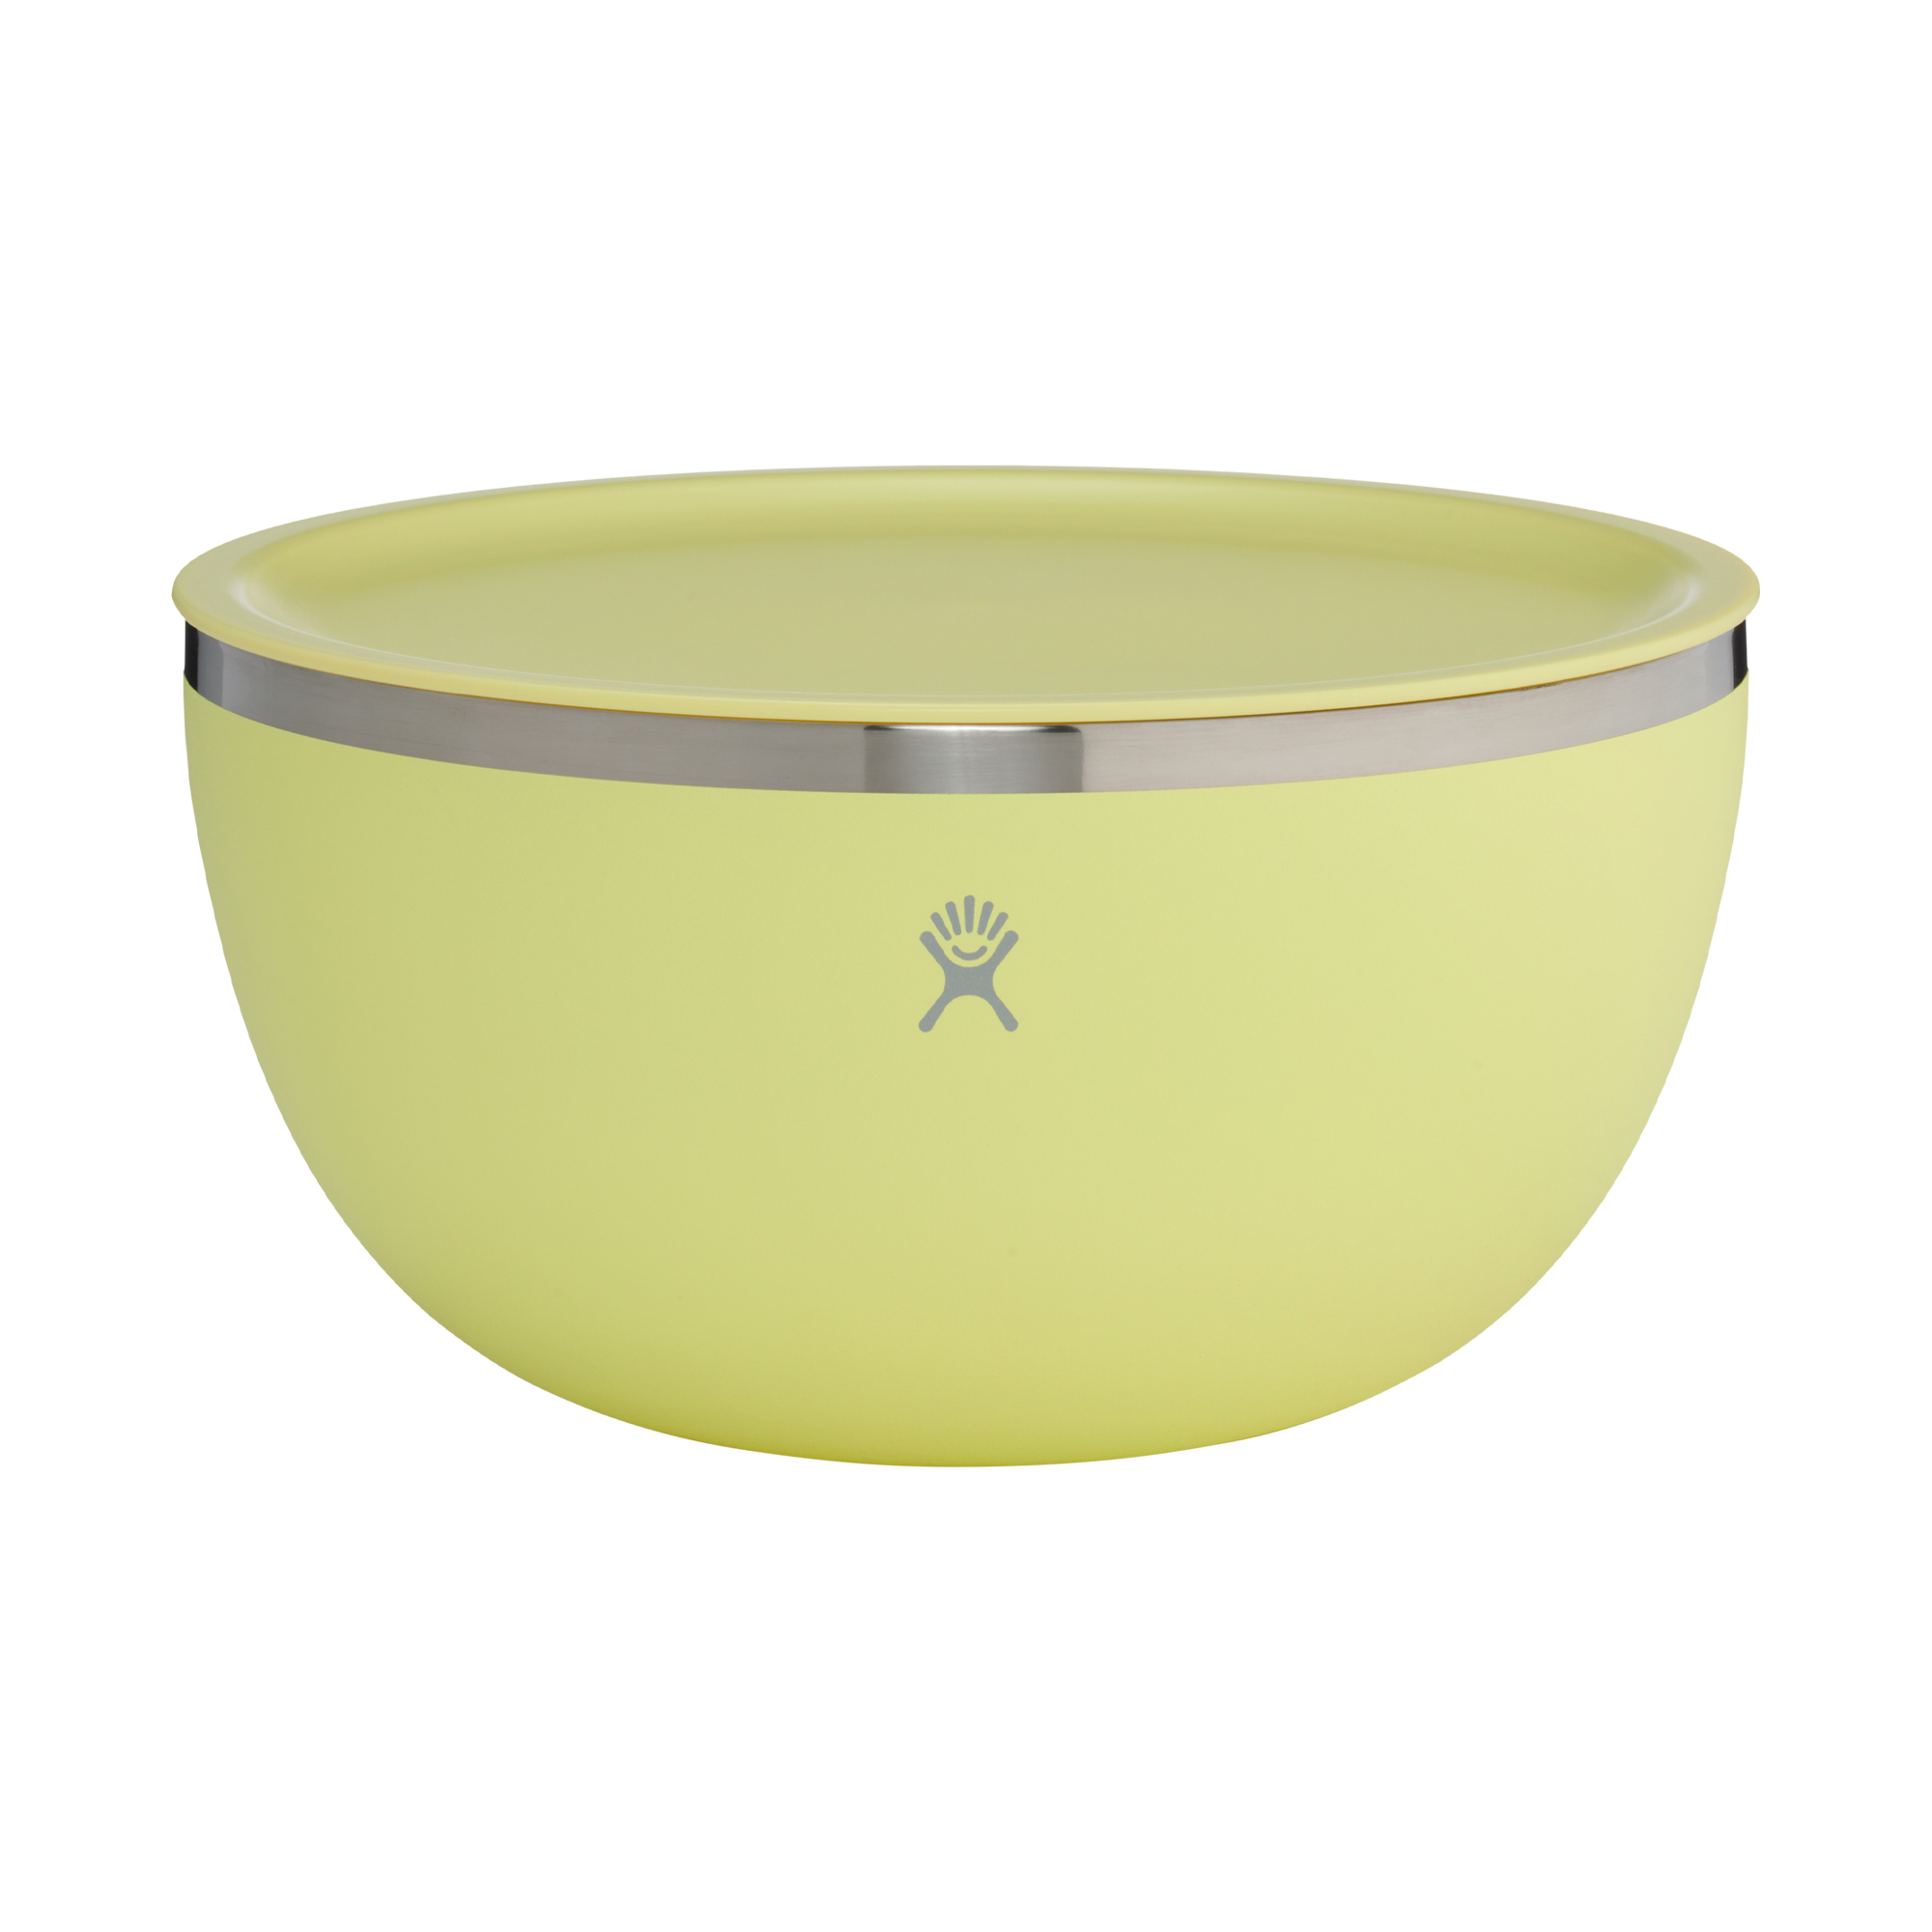 Hydro Flask 3 Quart Serving Bowl with Lid